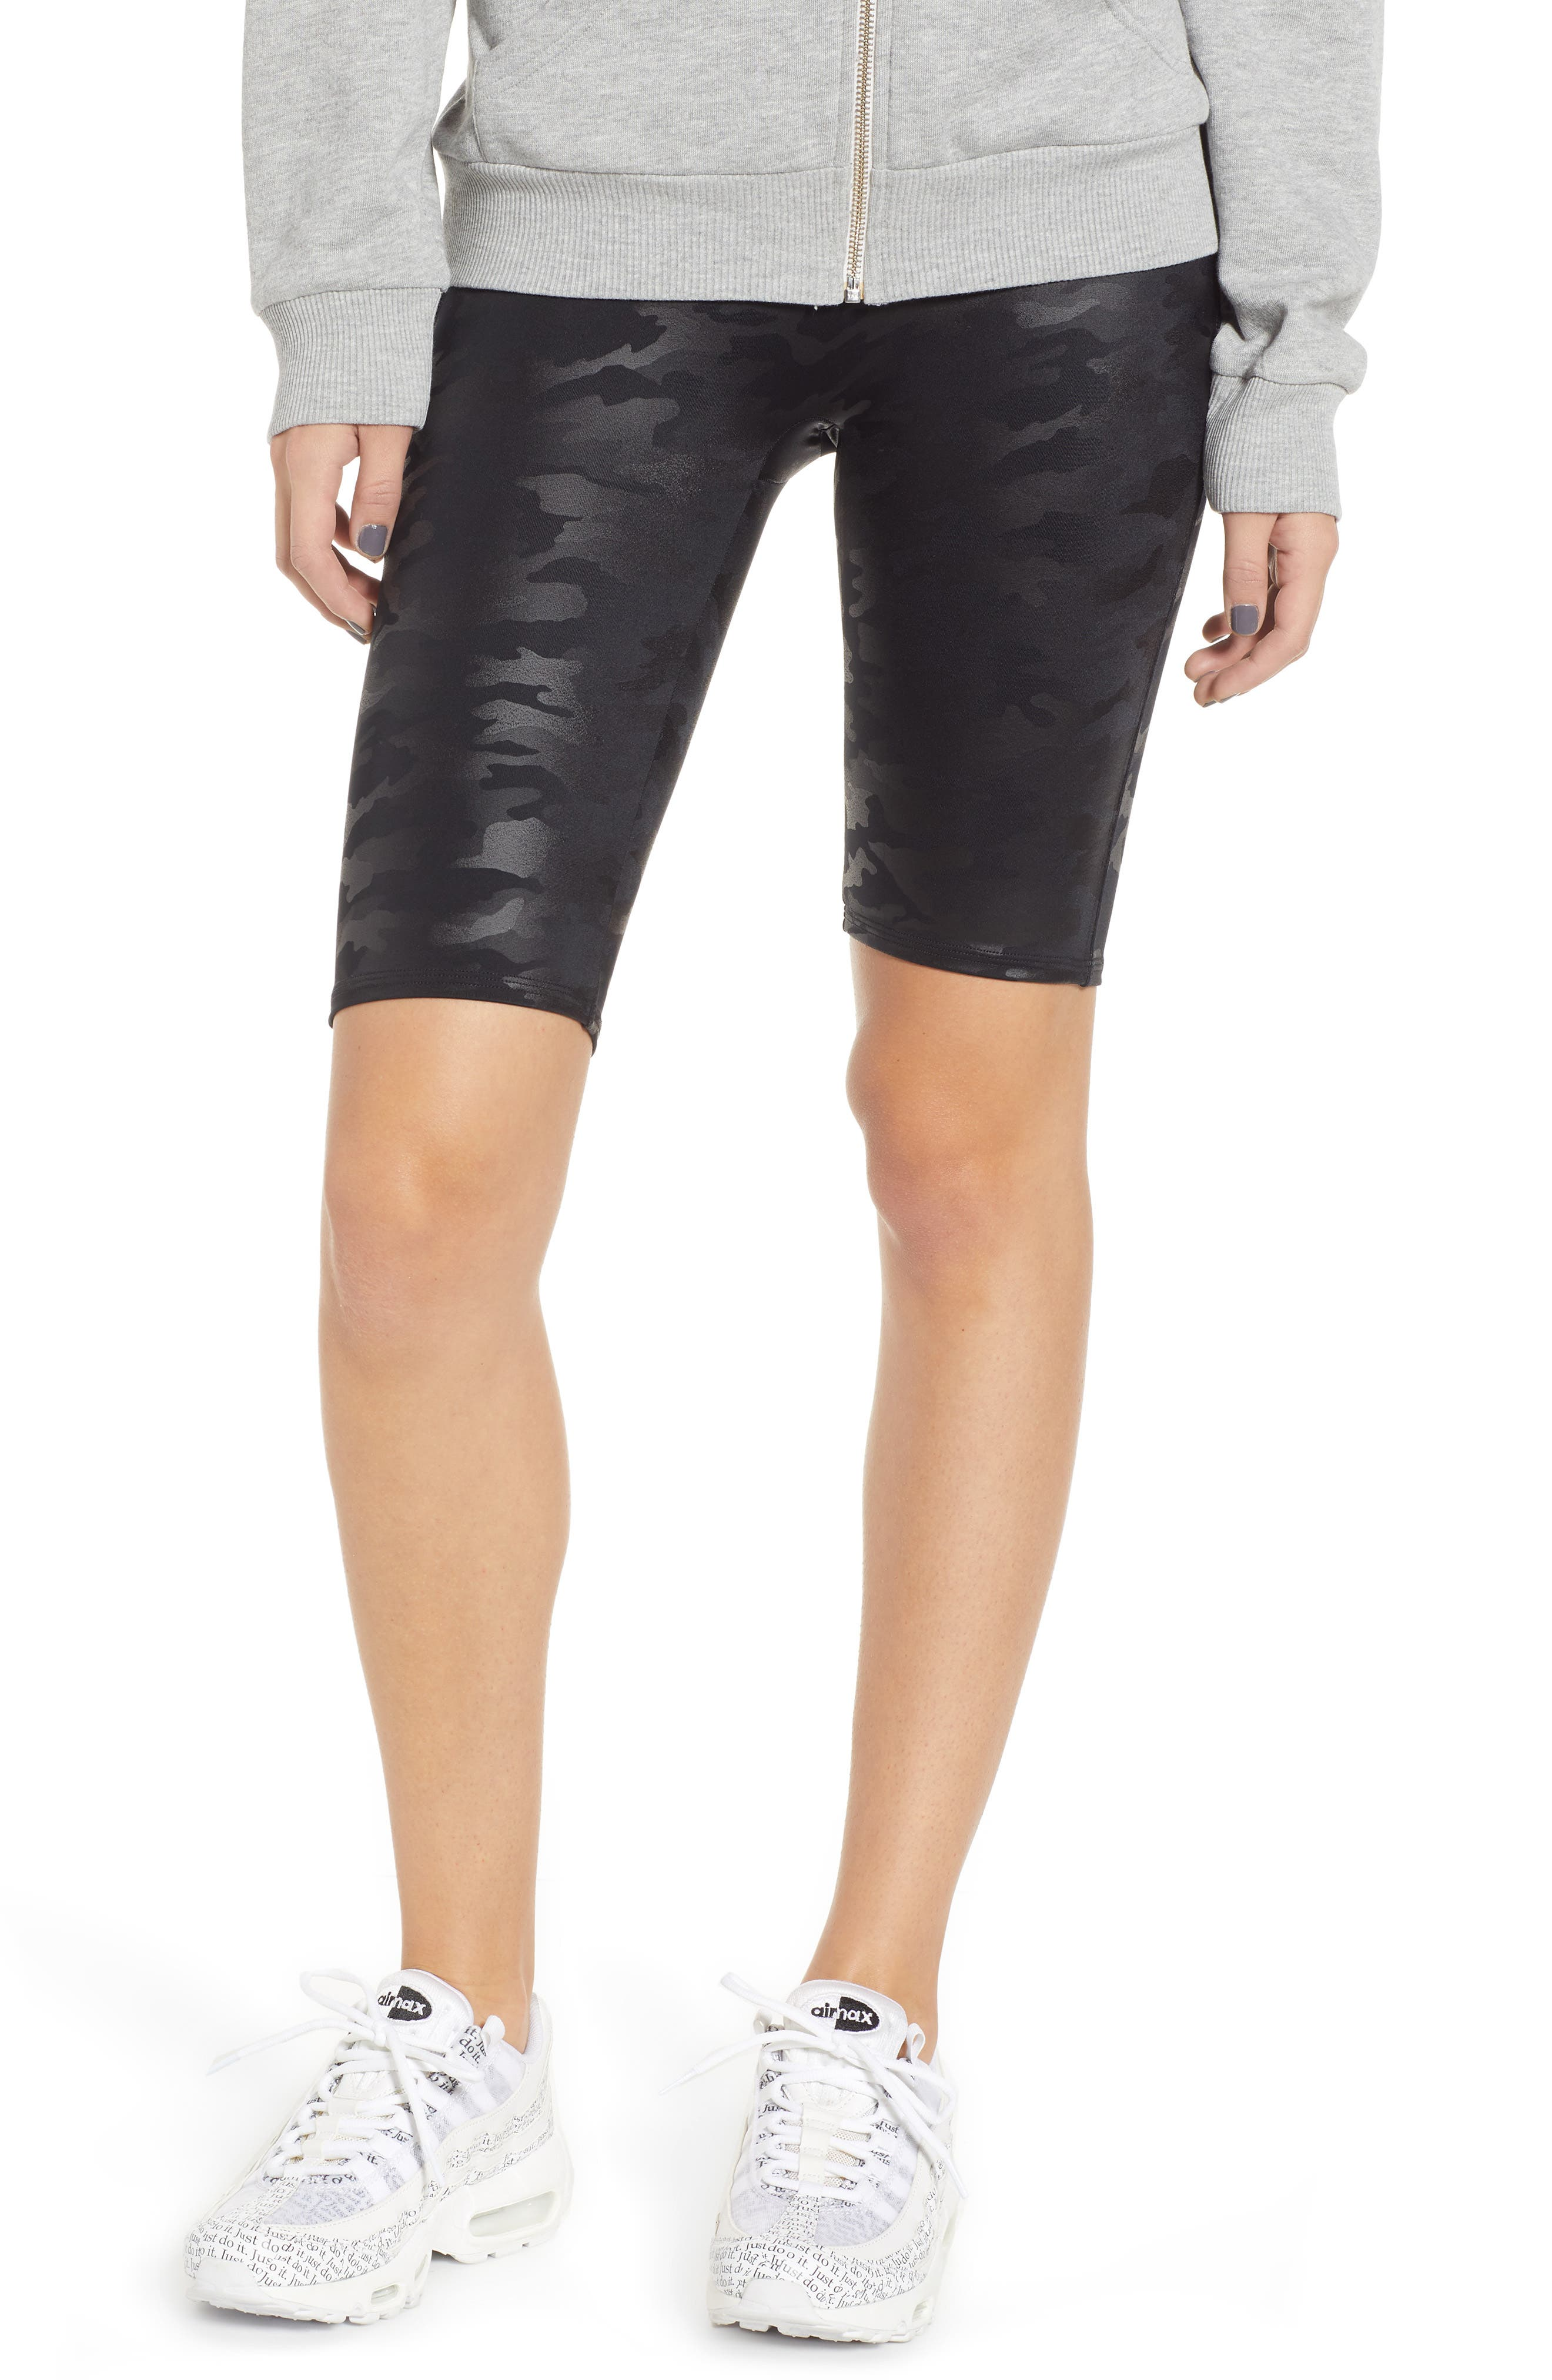 Women's Spanx Faux Leather Bike Shorts